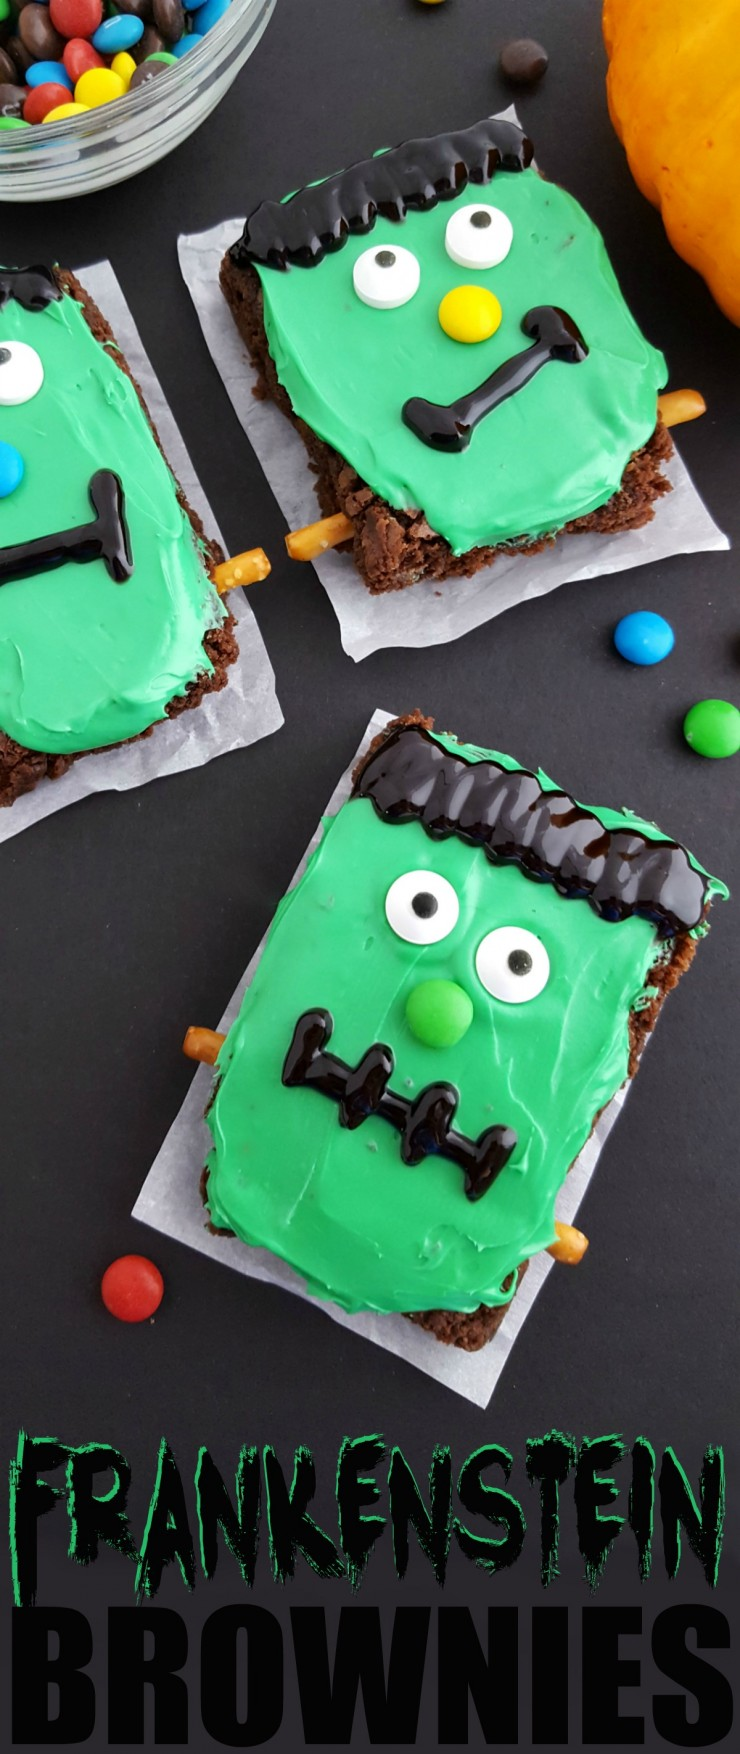 These Frankenstein Brownies are a cute Halloween treat that are a little spooky and a little bit sweet. Perfect for Halloween parties, kids are sure to love this ghoulish treat!